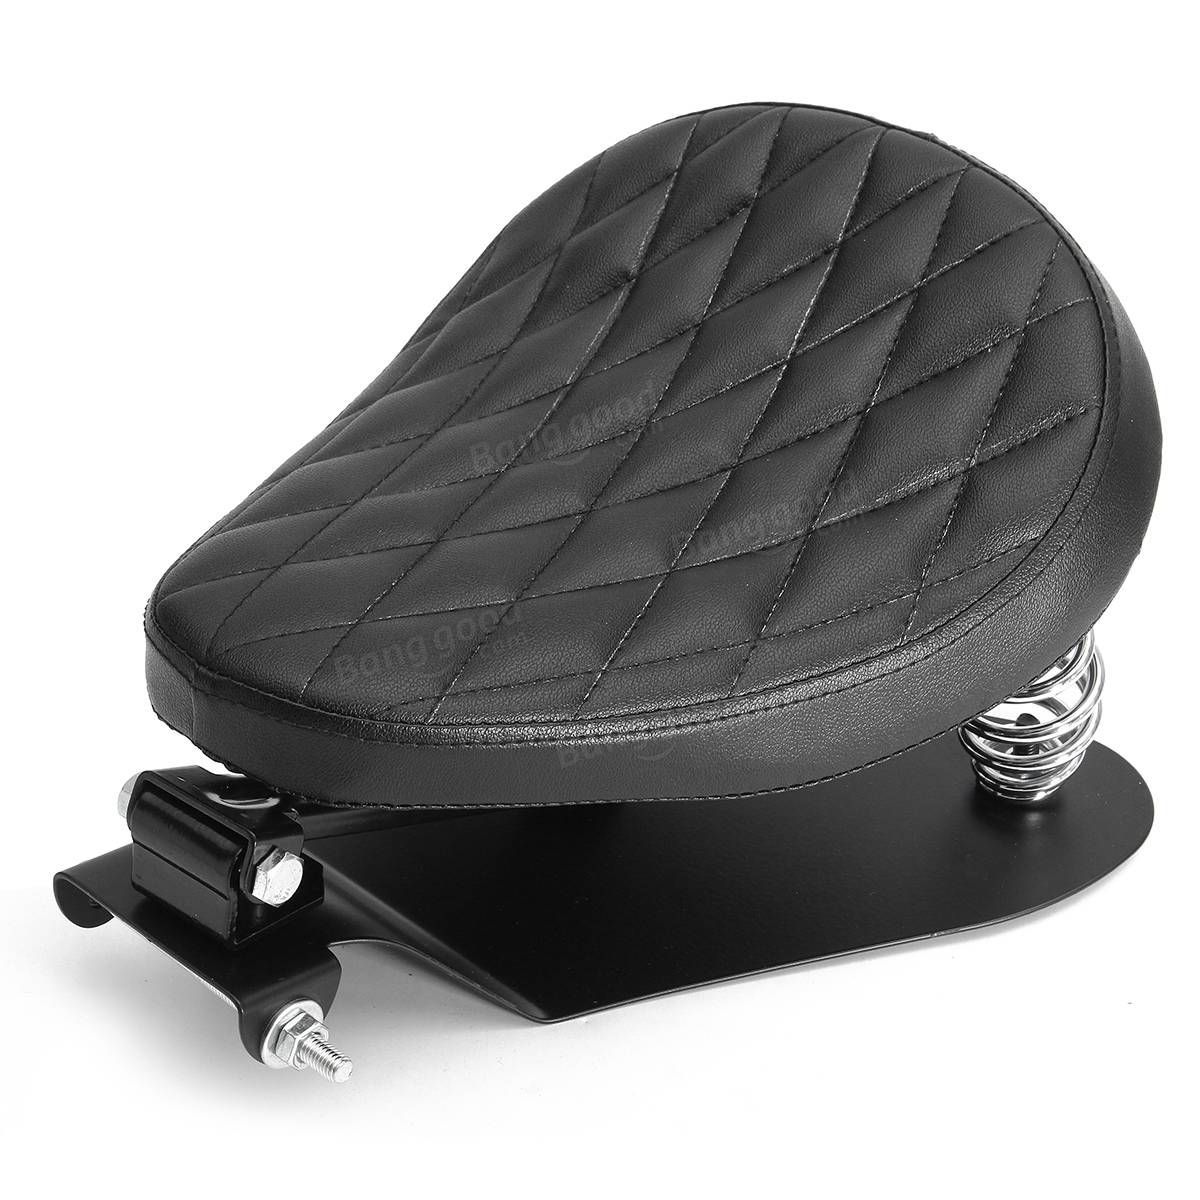 Only Us 98 99 Buy Best Motorcycle Solo Seat Cushion With Brackets